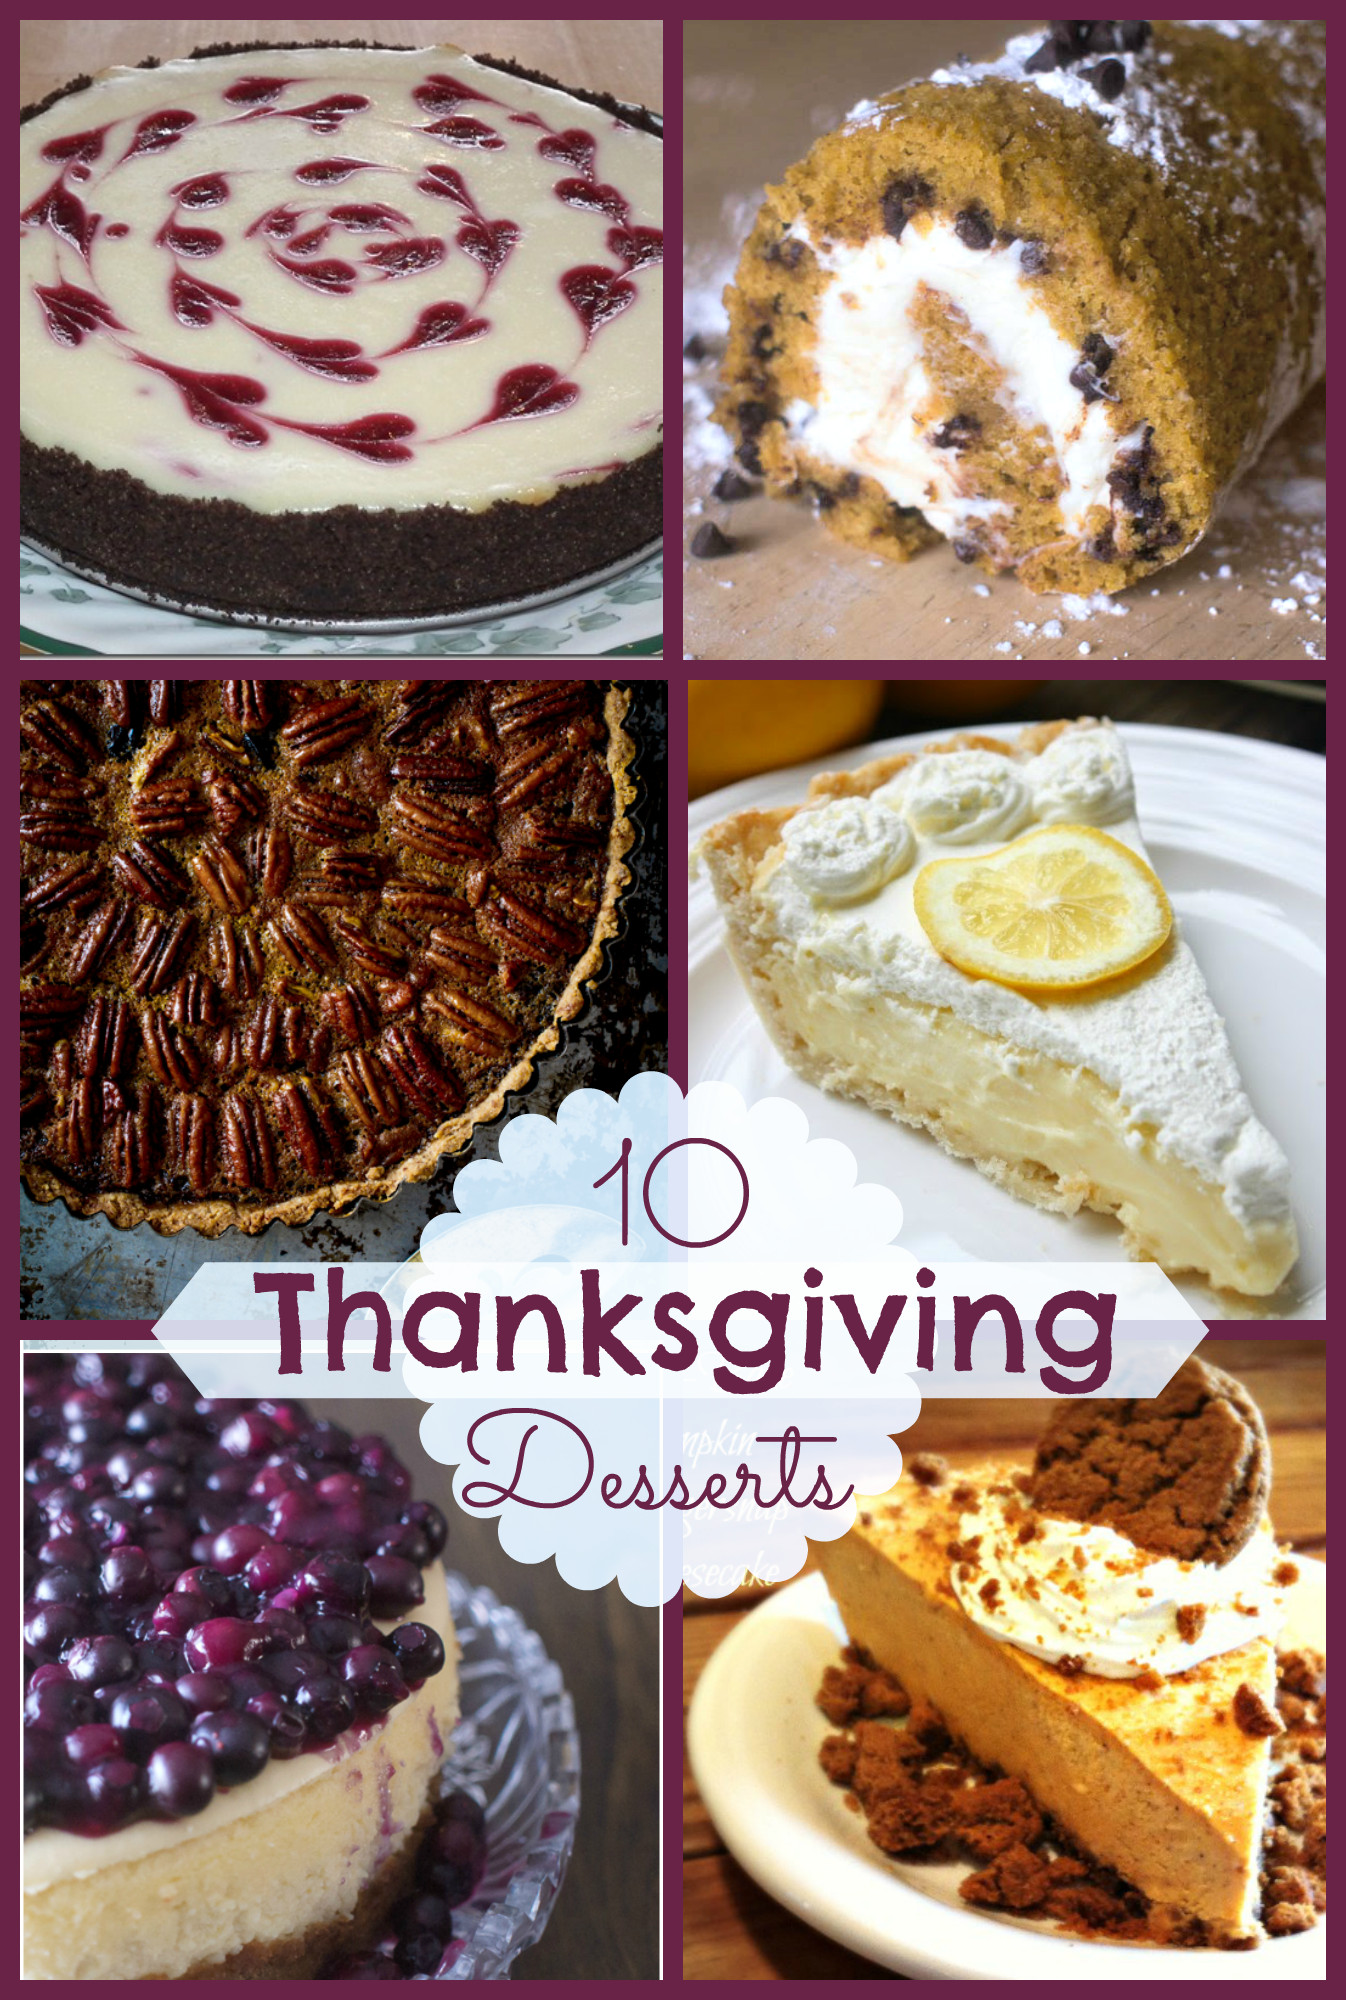 Desserts For Thanksgiving  10 Fabulous Thanksgiving Desserts